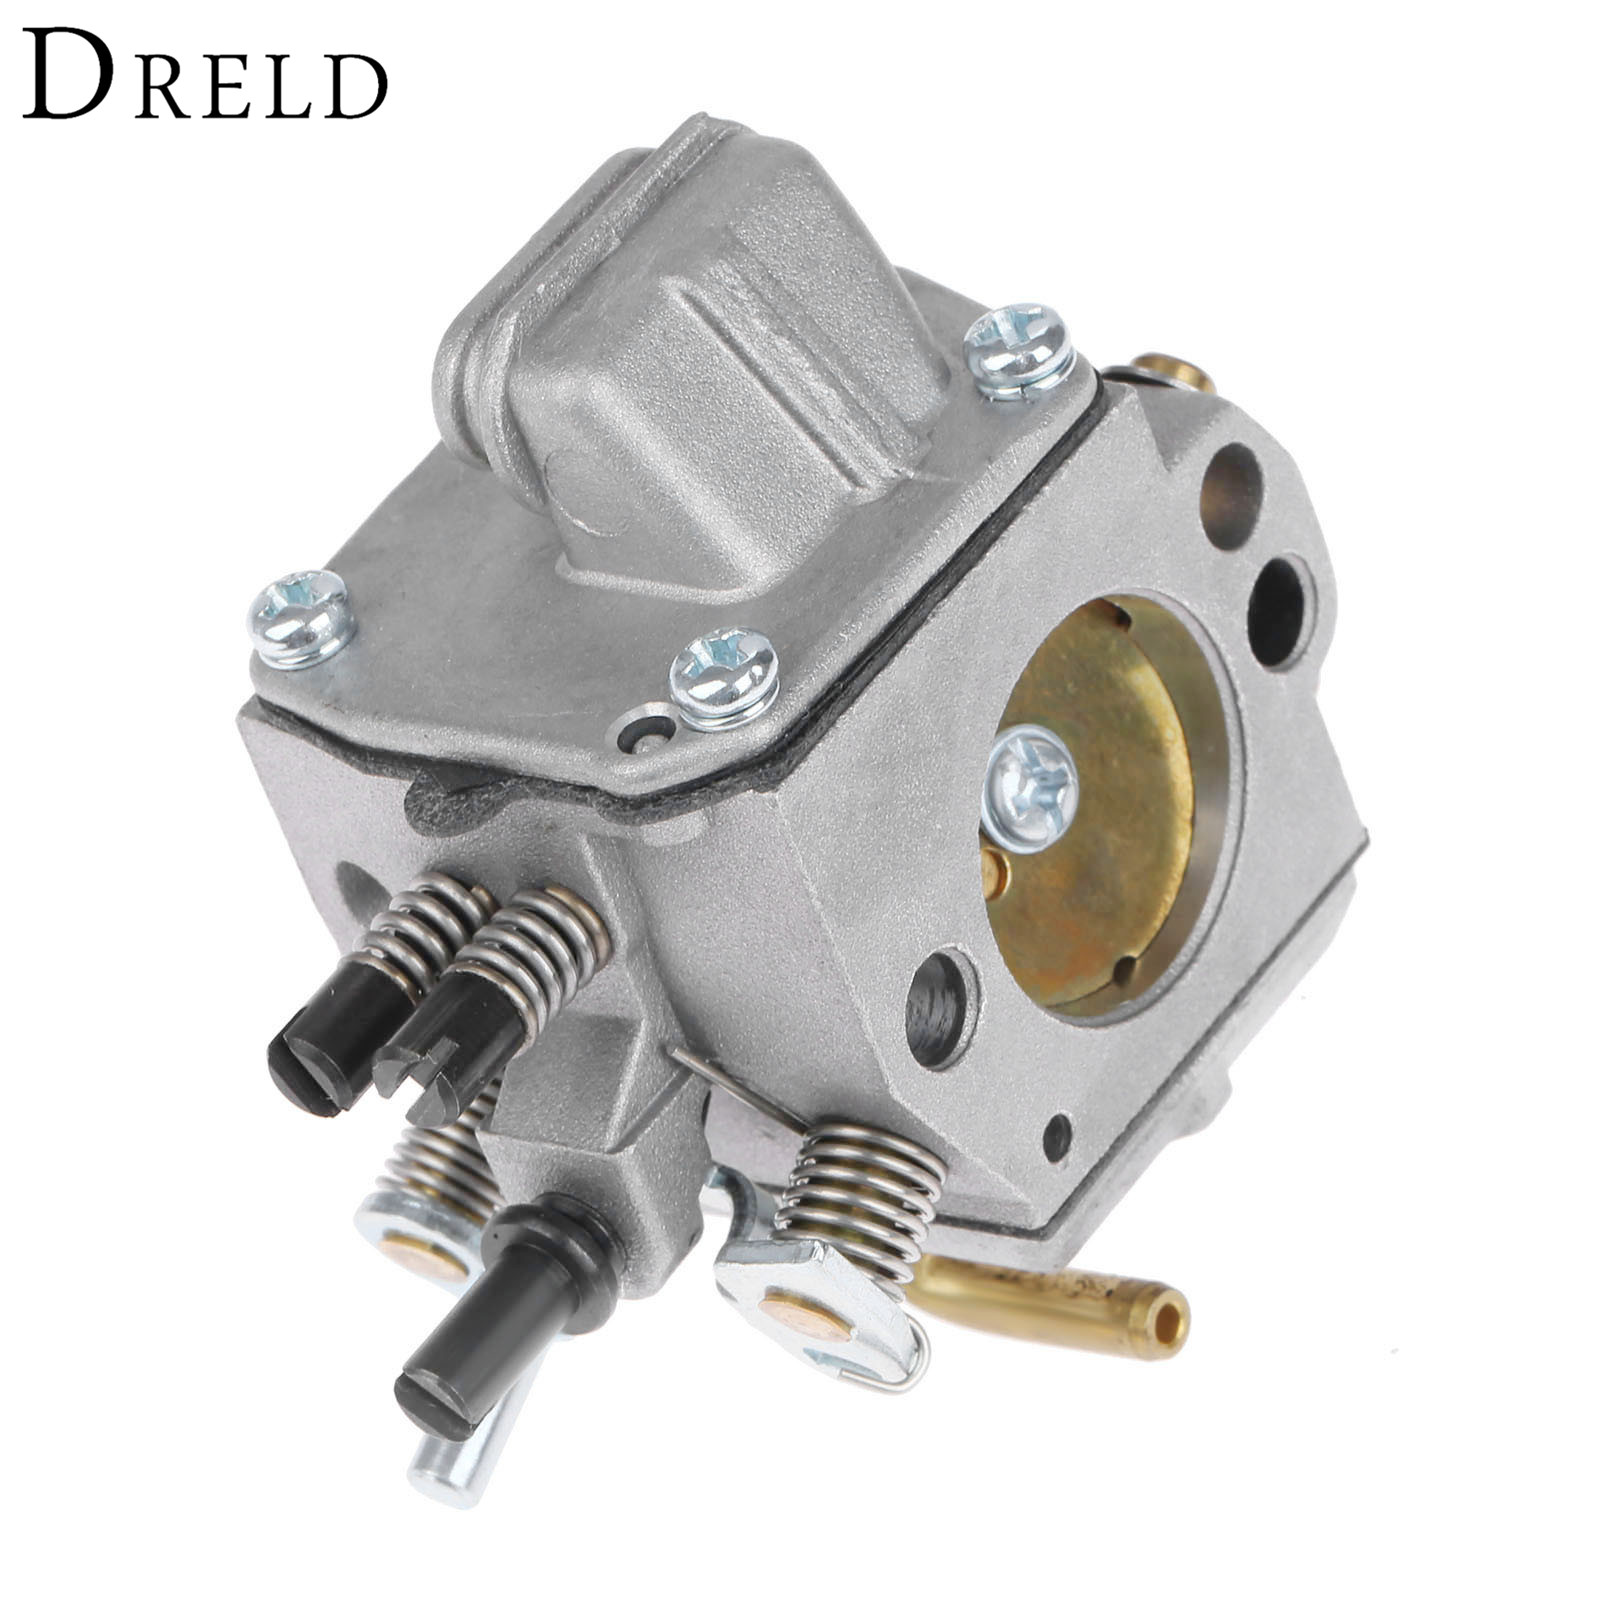 DRELD Chainsaw Carburetor Carb For STIHL 029 039 MS290 MS310 MS390 MS 290 310 390 Chainsaw Spare Parts Replace# 1127 120 0650